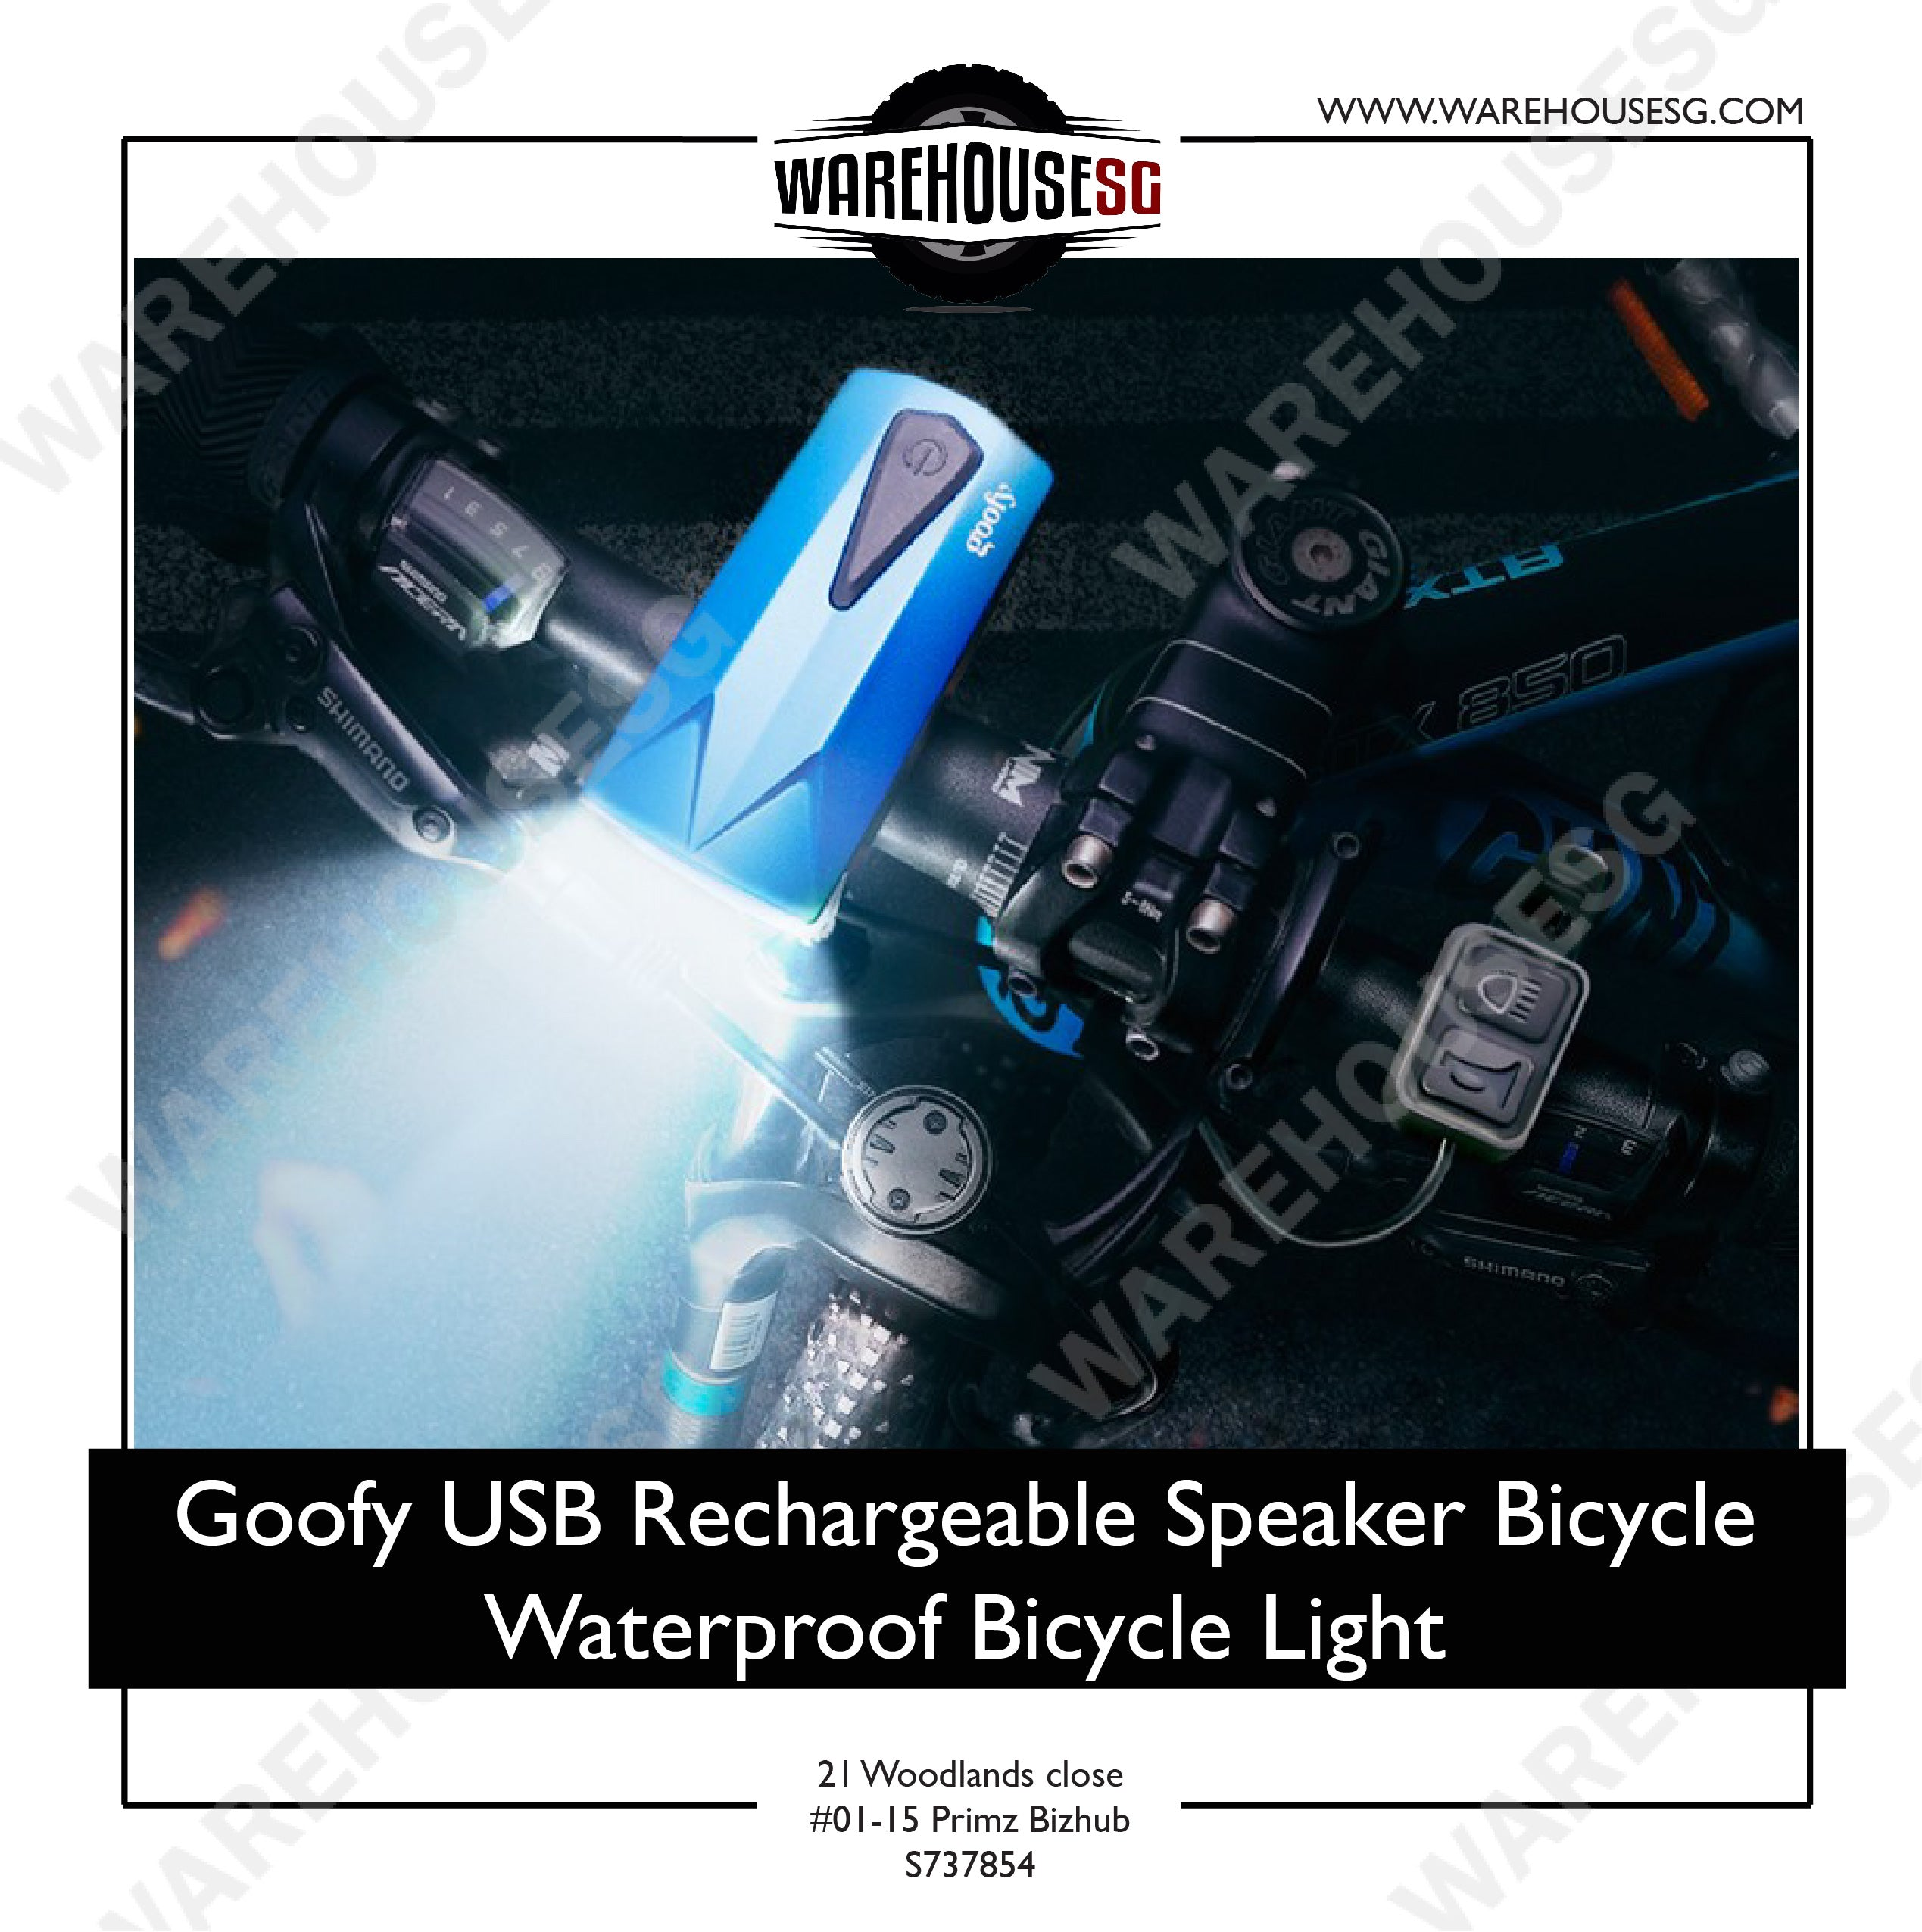 Goofy USB Rechargeable Speaker Bicycle Waterproof Bicycle Light